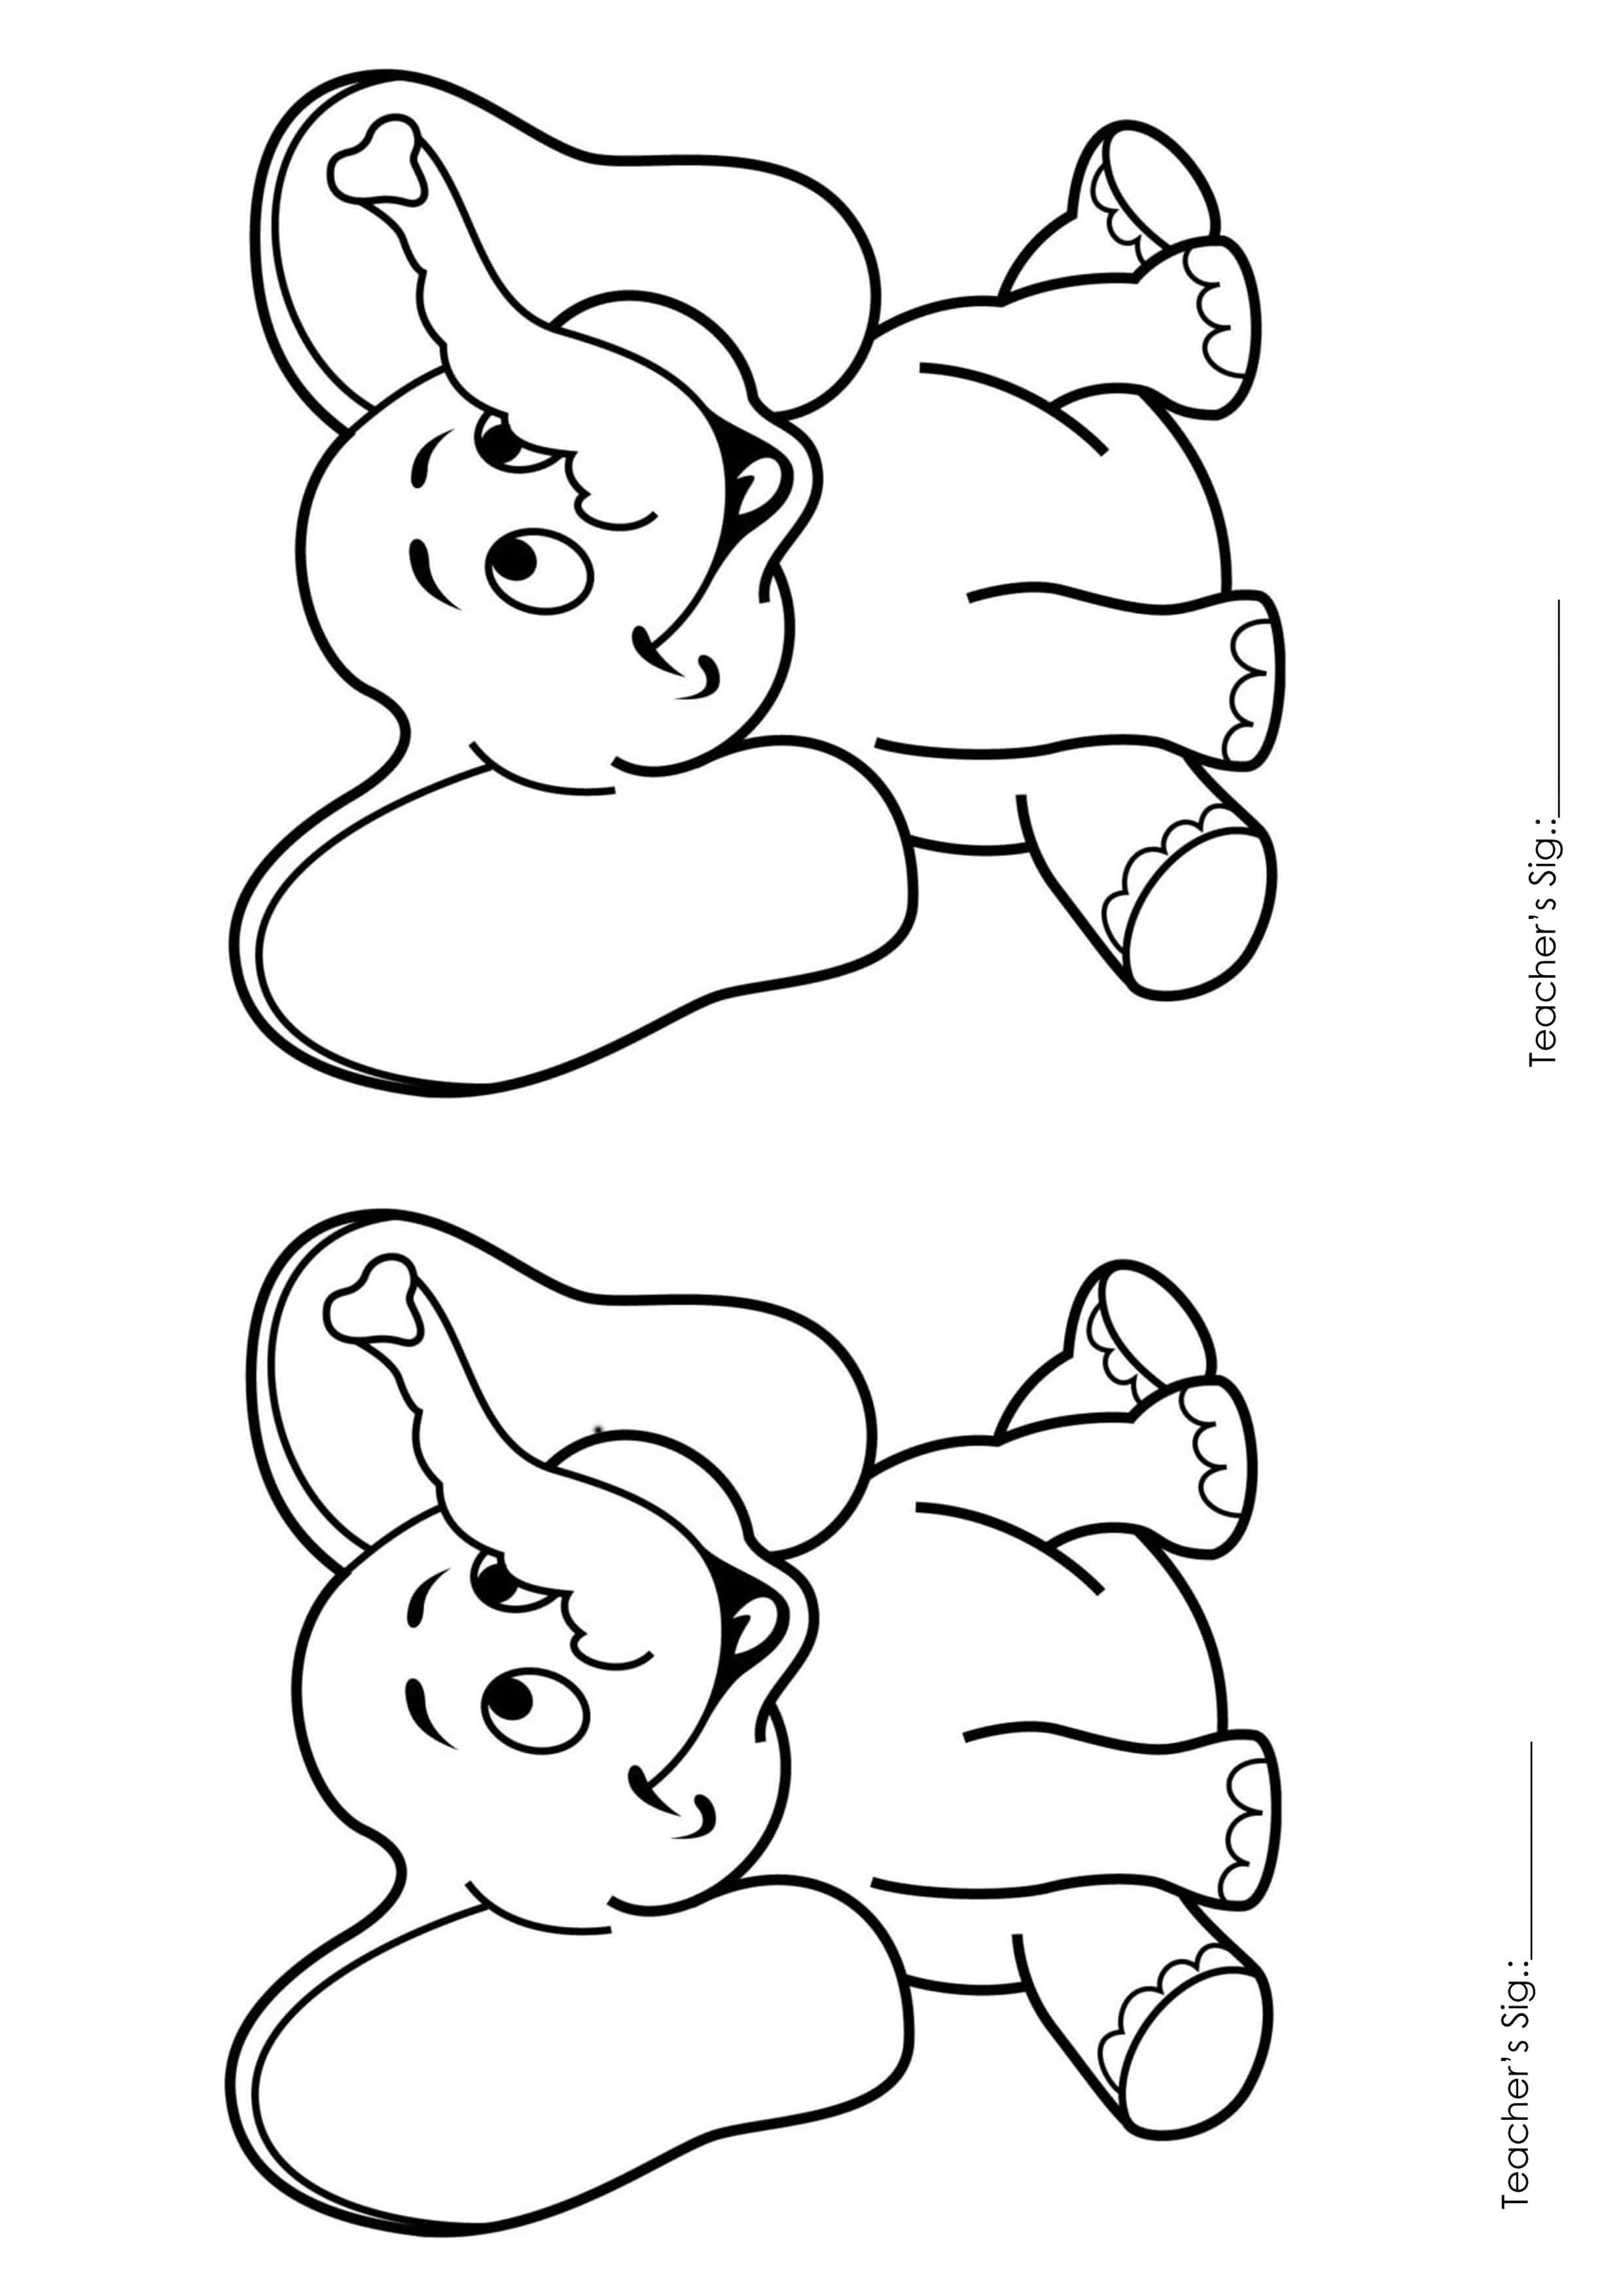 a4 coloring pictures a4 coloring pages with images coloring pages cute a4 pictures coloring